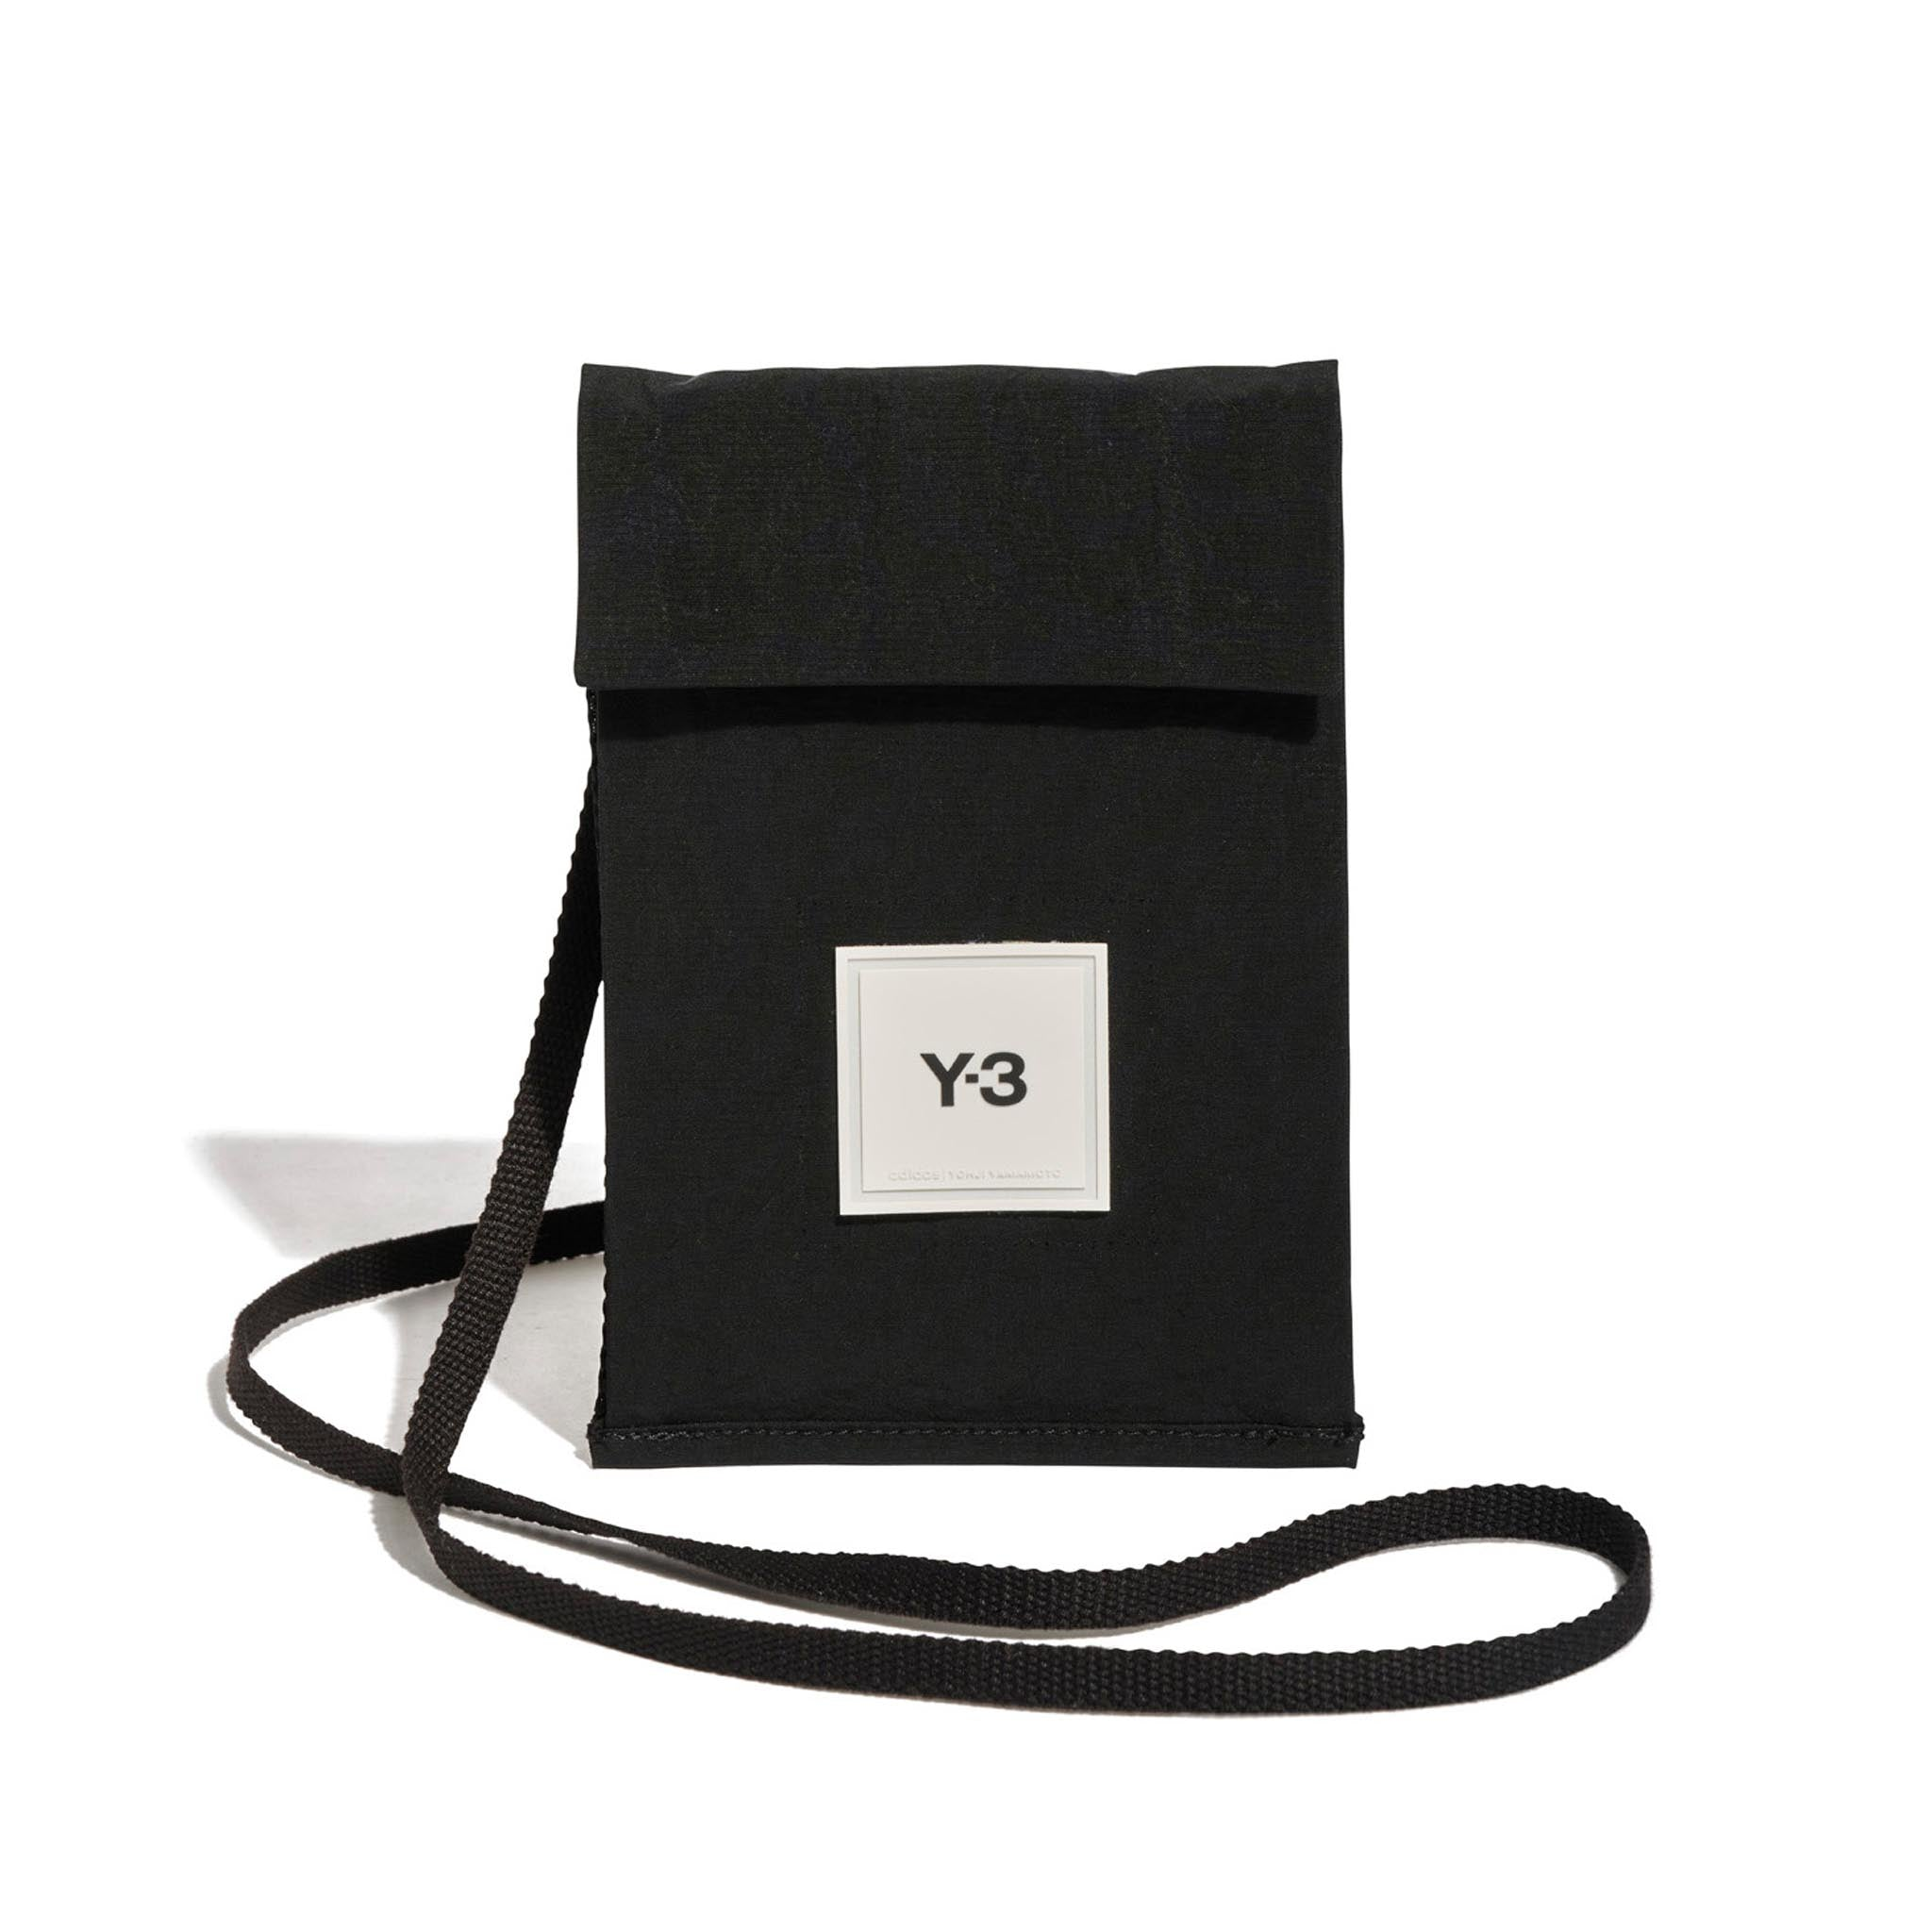 ADIDAS Y-3 CH3 Pocket Bag Black